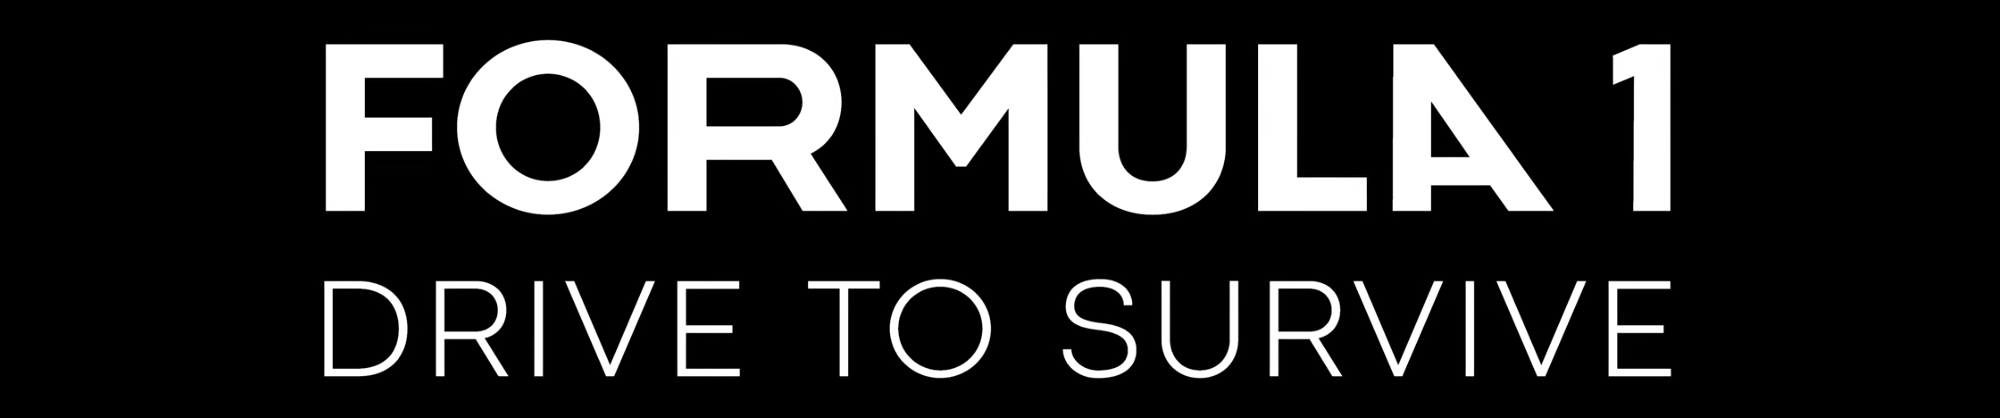 Formula 1 - Drive to survive